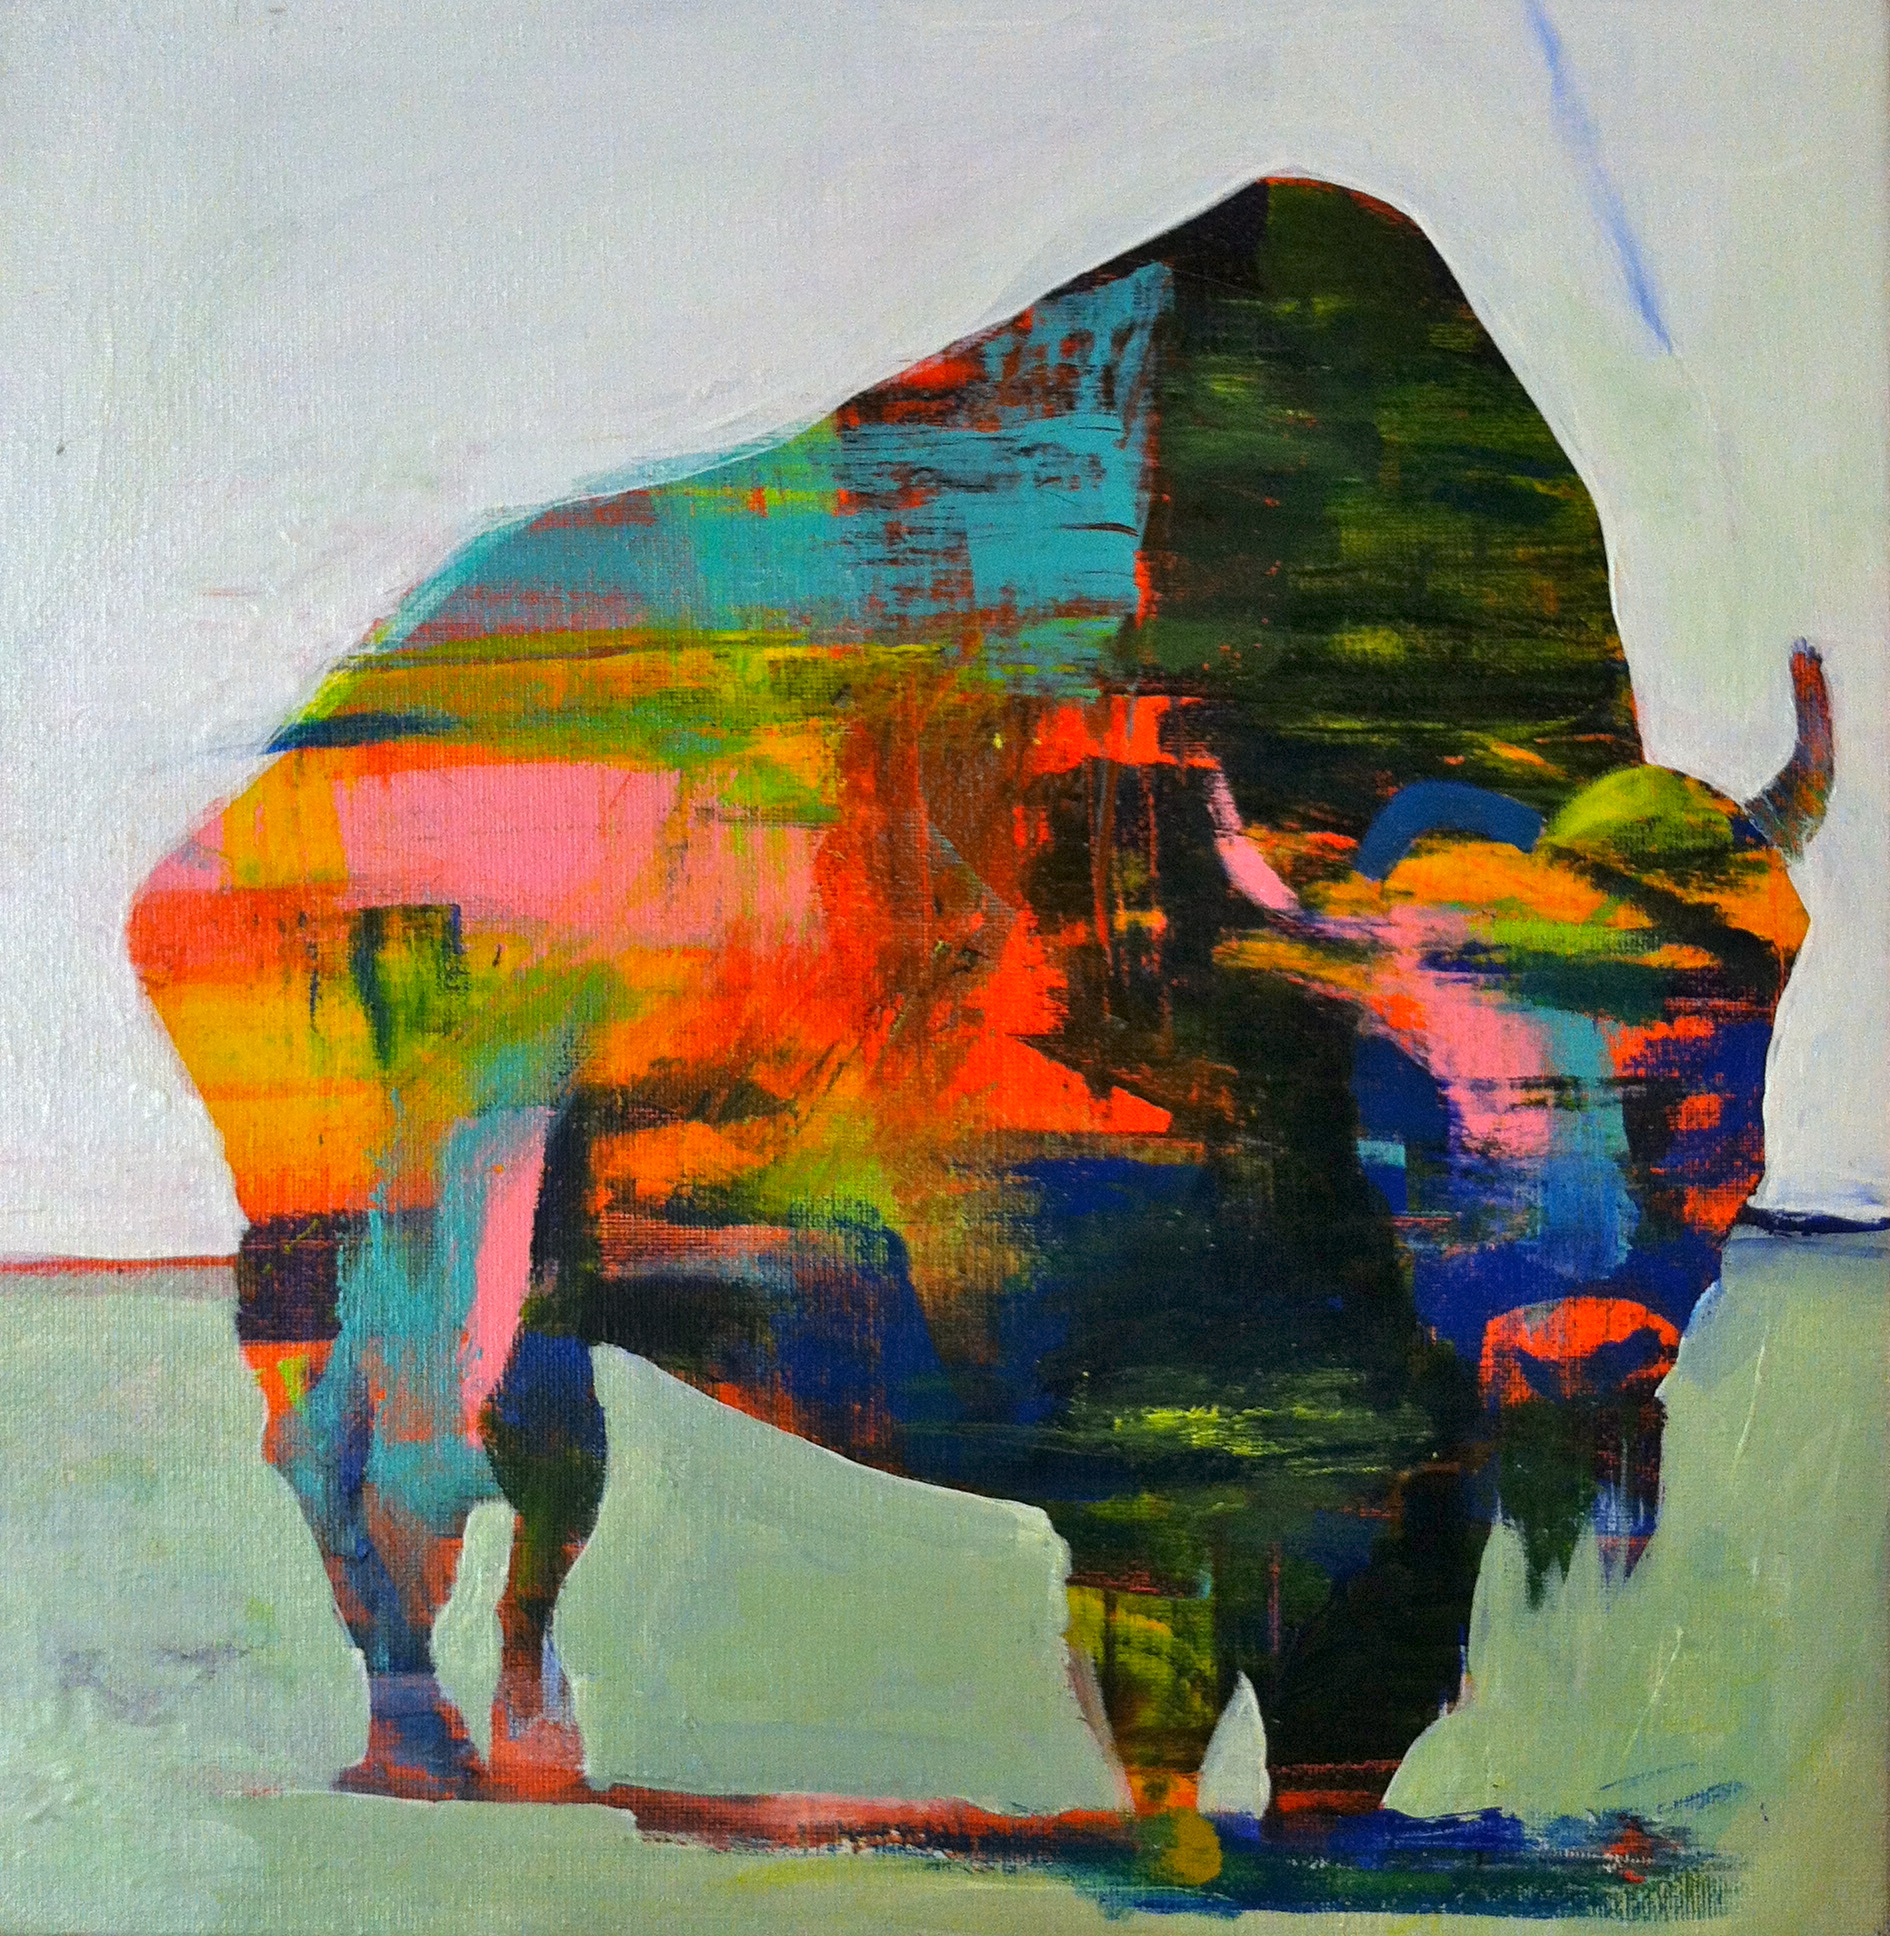 Bison in white, acrylic on canvas, 12x12 inches, 2015